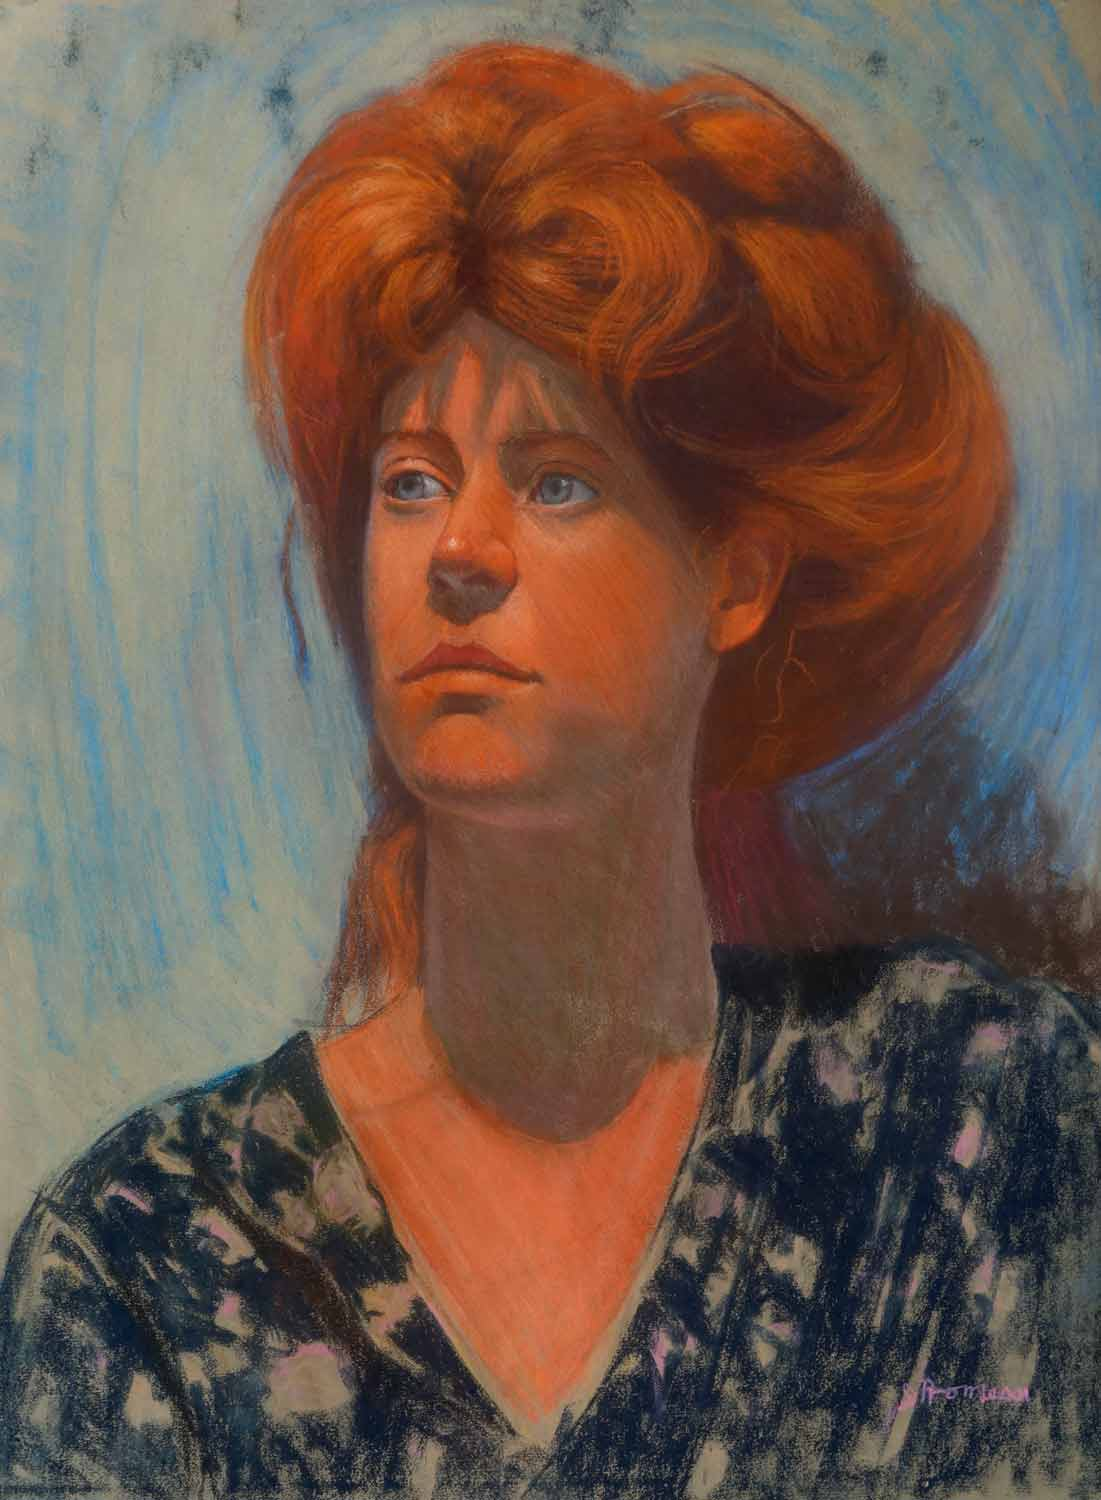 Red Head, 23 x 29, Pastel on paper